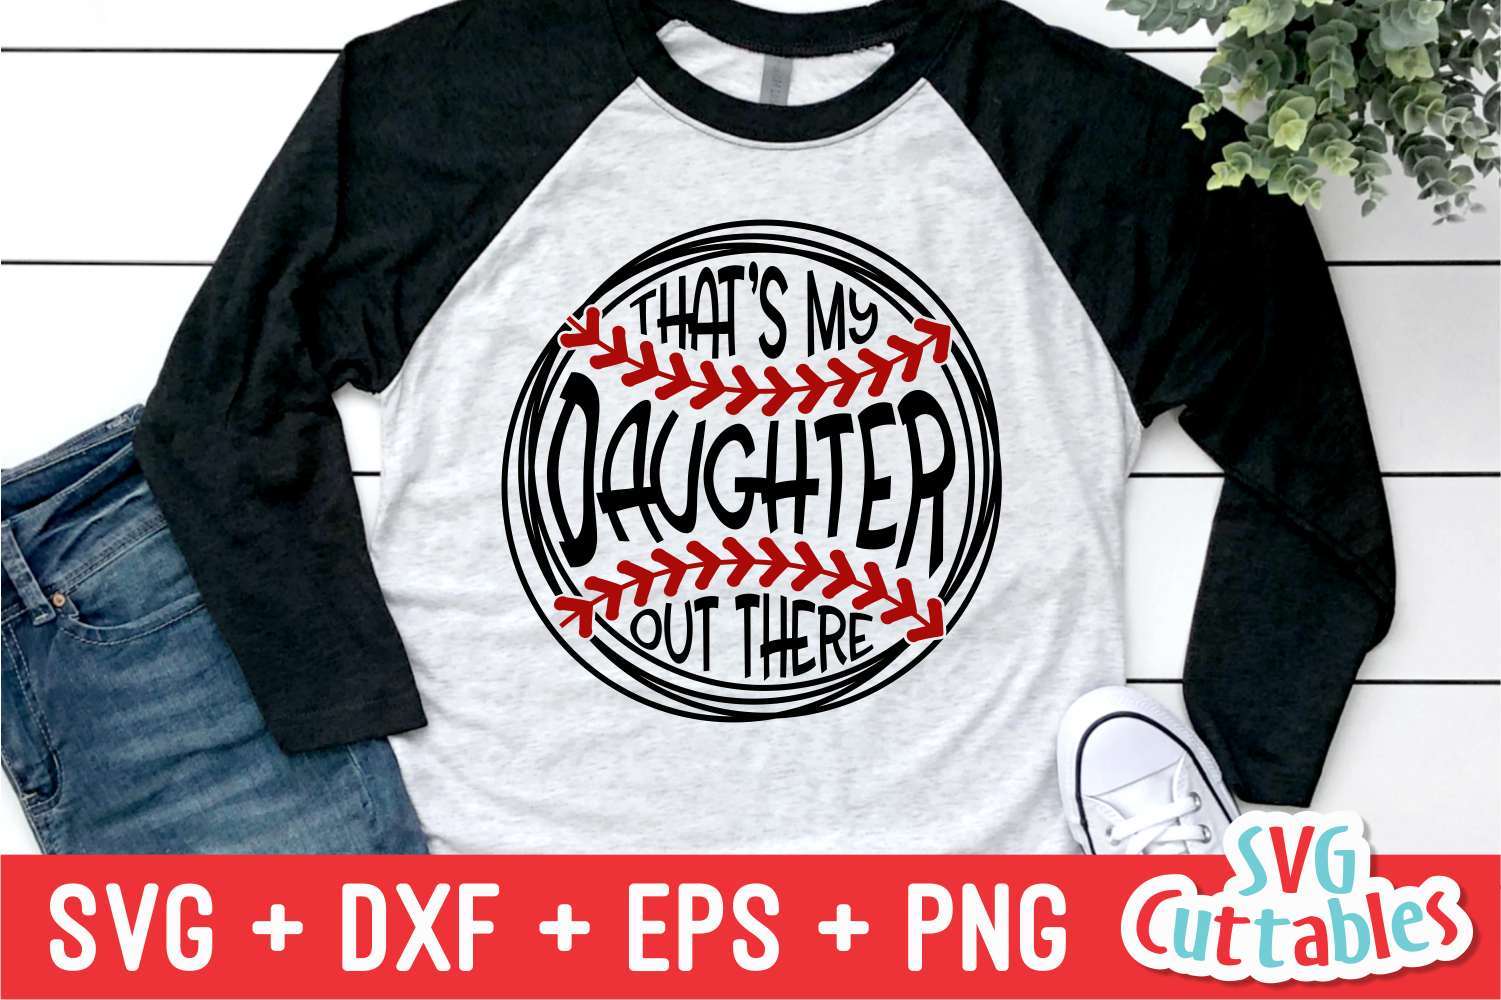 That's My Daughter Out There | Softball | SVG Cut File example image 1